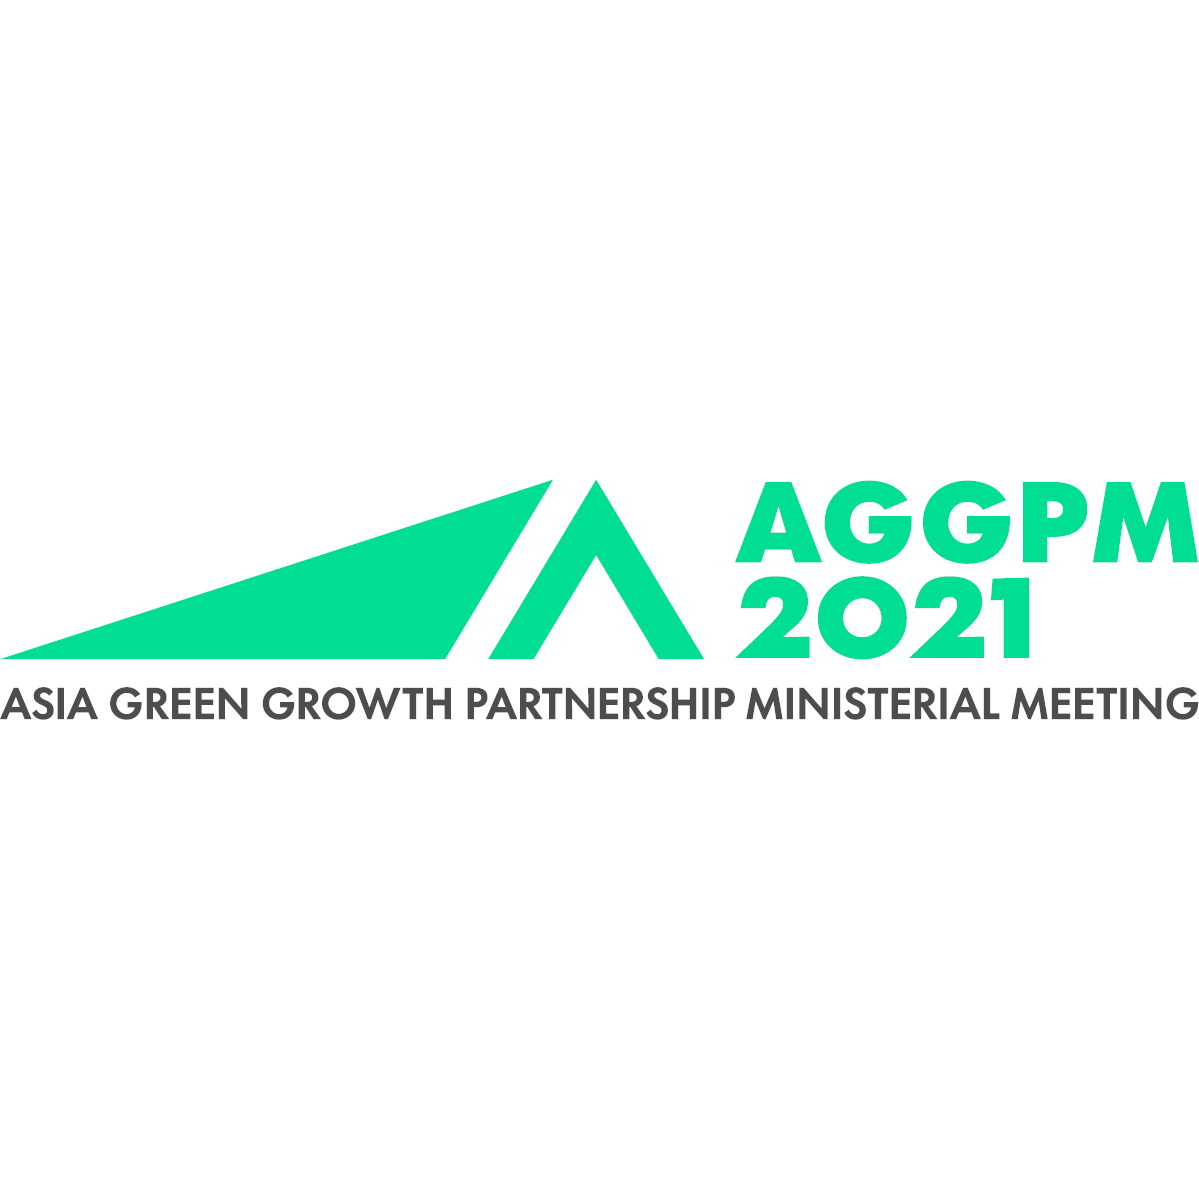 Asia Green Growth Partnership Ministerial Meeting